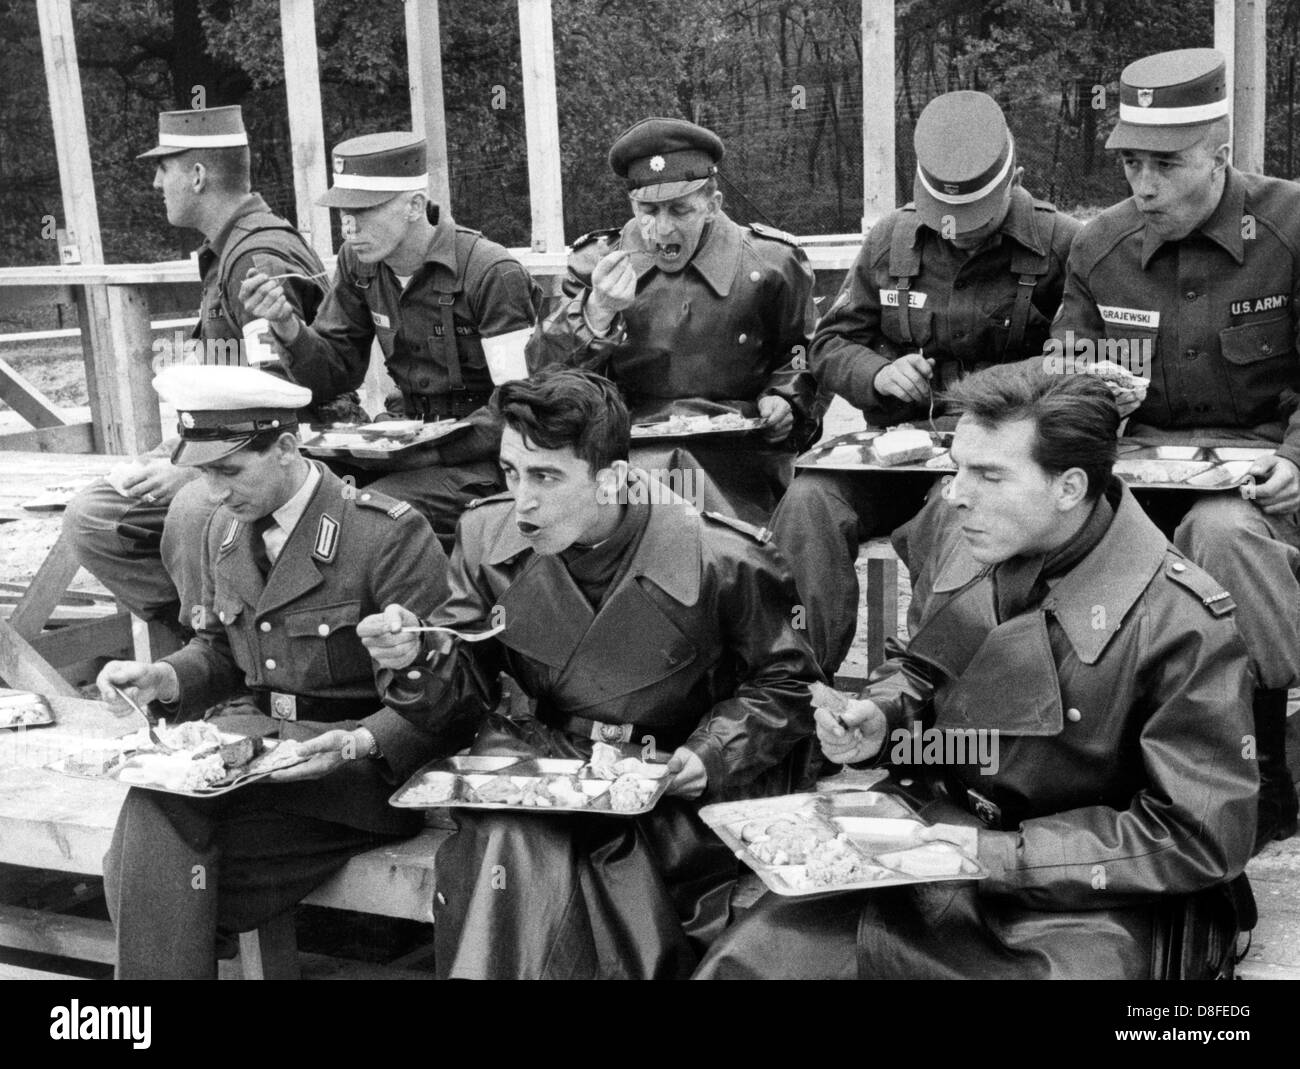 Soldiers of the US army have their meal together with police men of West Berlin shortly before the beginning of the field exercise on the 23rd of October in 1962 on the US artillerey range Keerans Range in Grunewald in Berlin. The exercise was part of a four day manoeuvre of the US troops. Stock Photo